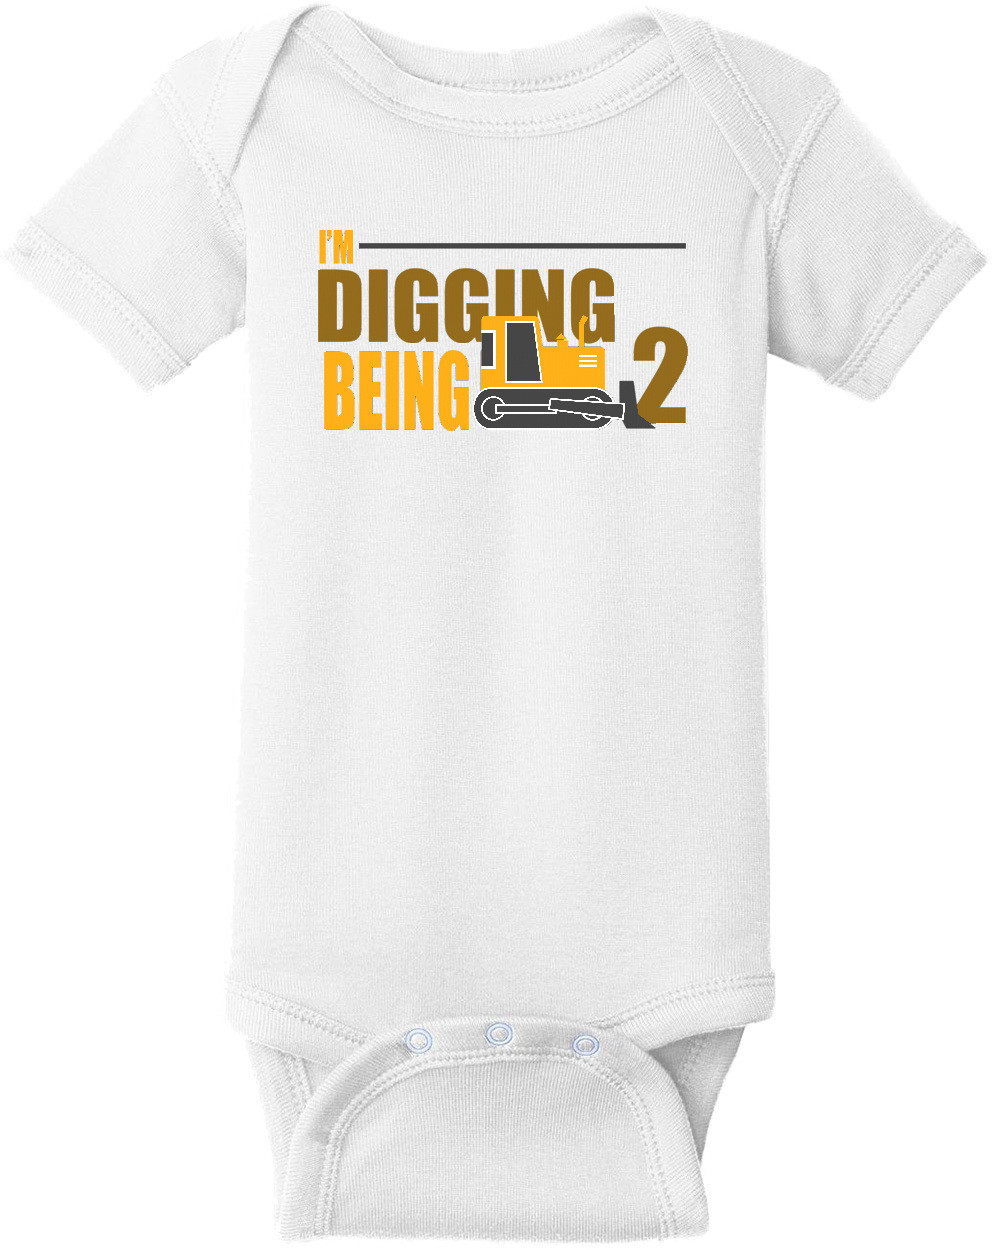 I'm digging being 2 - Boys Happy Birthday. Custom T-Shirt with your boys age. Personalized Birthday T-Shirt